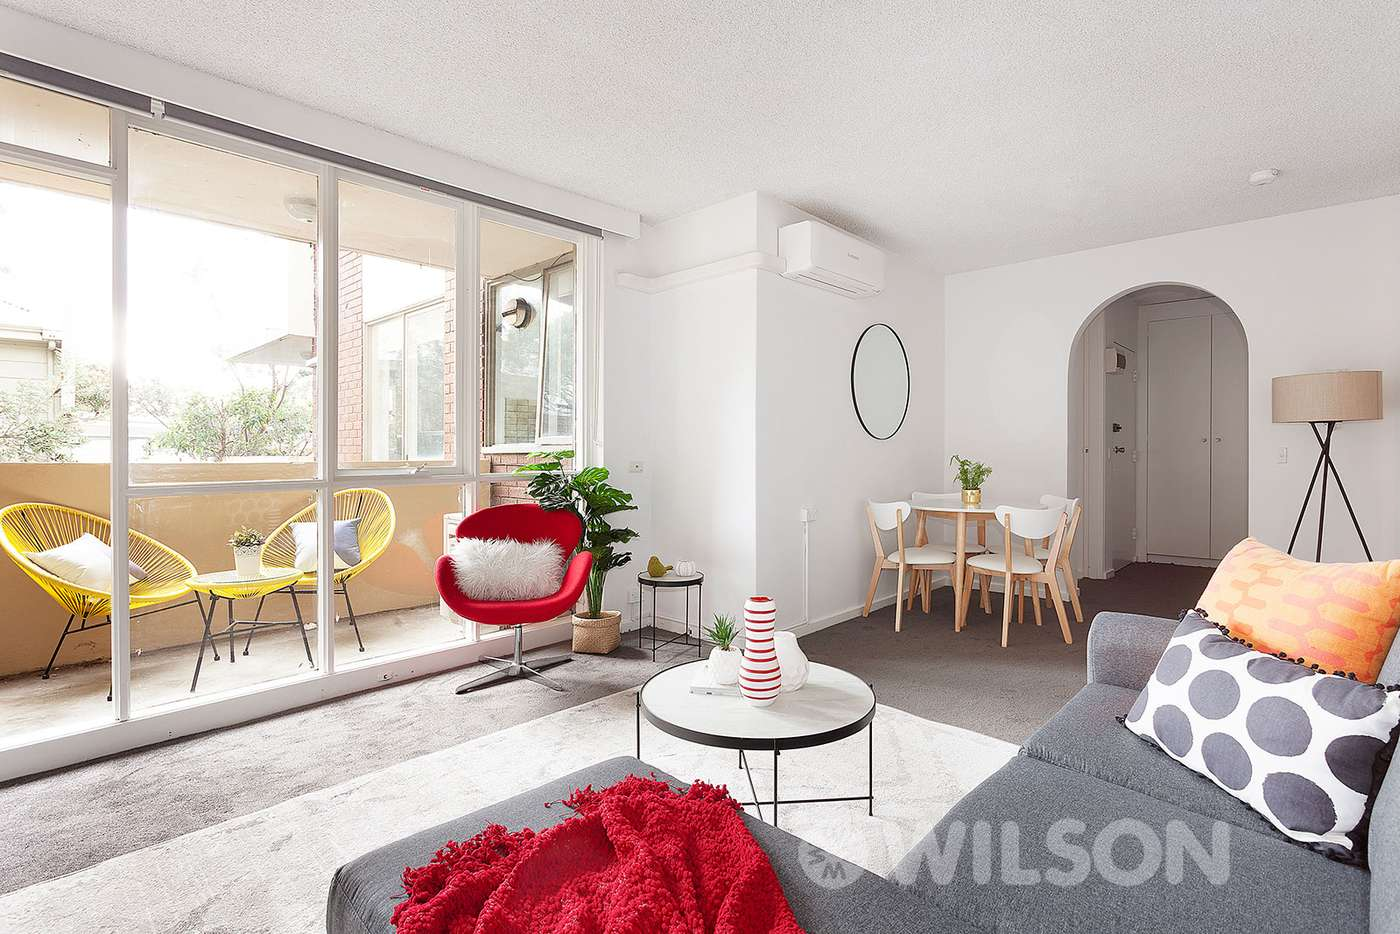 Main view of Homely apartment listing, 12/70 Park Street, St Kilda West VIC 3182